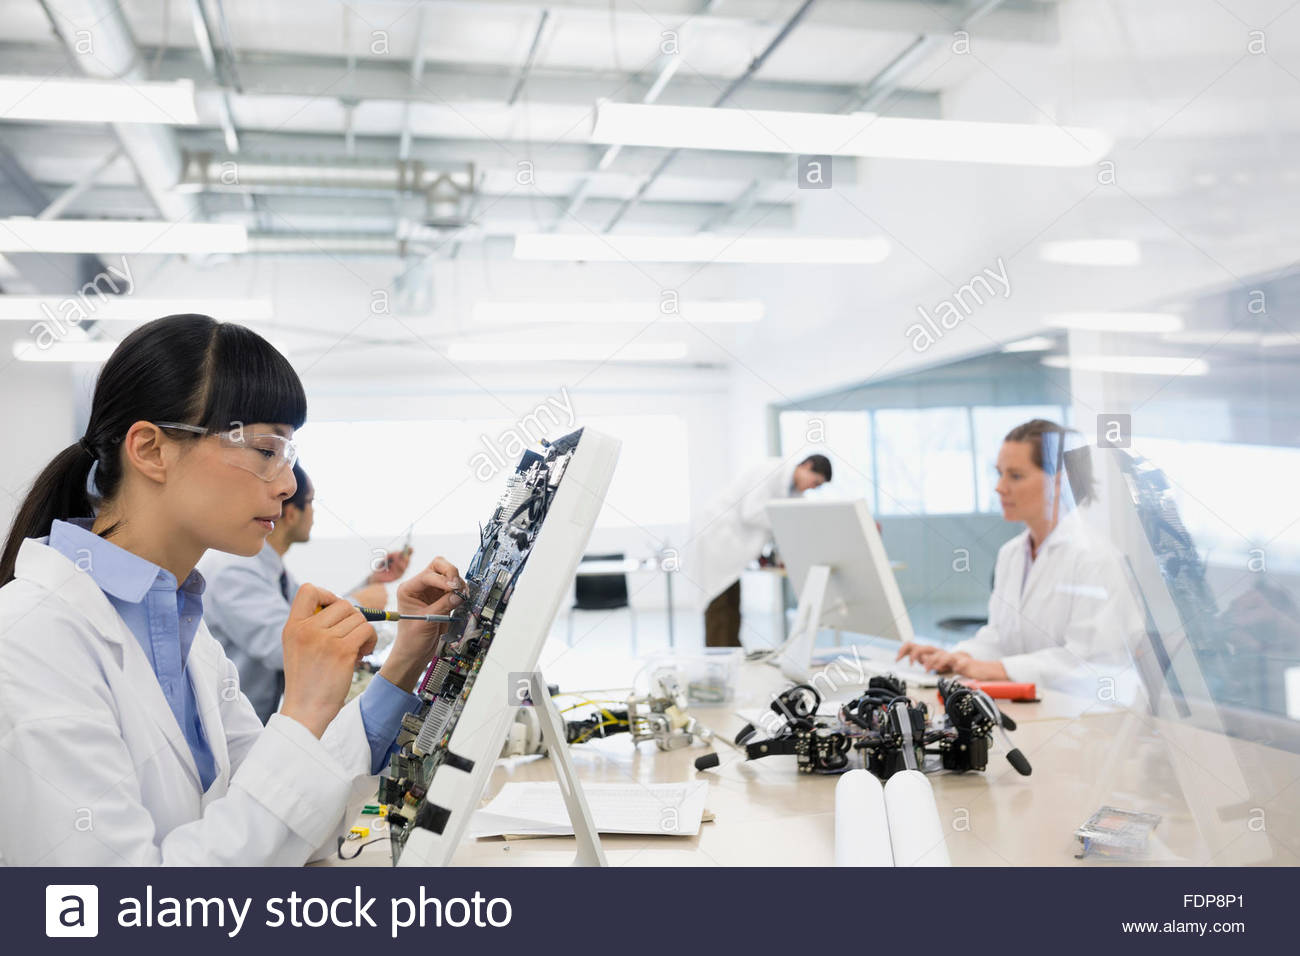 Engineer assembling computer parts Stock Photo